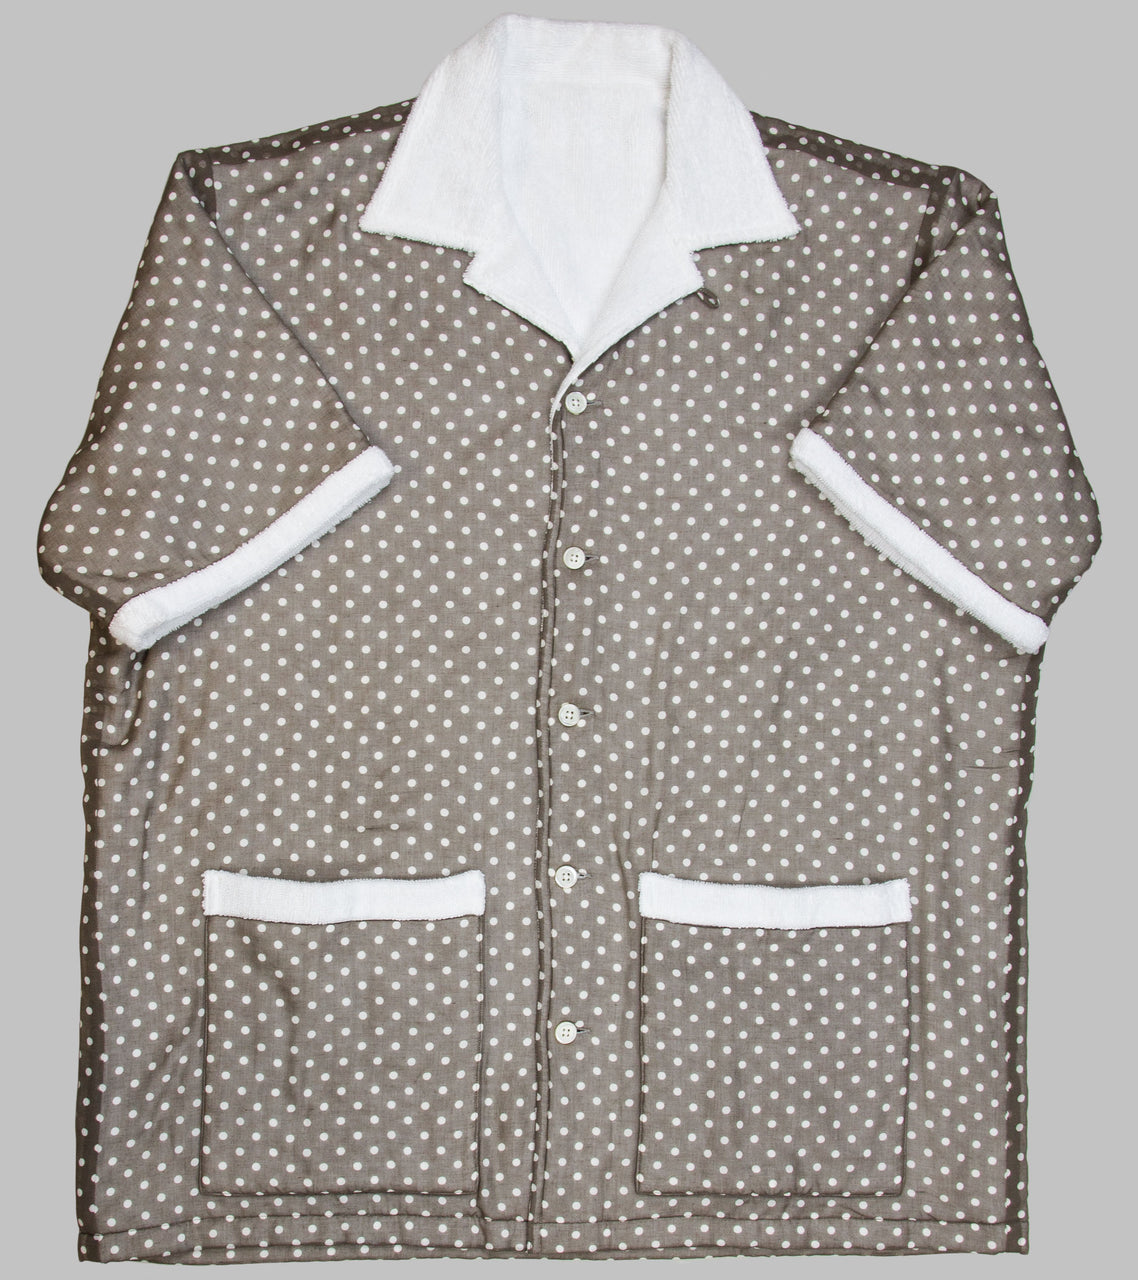 Bryceland's Towel Shirt Voile Spot Brown